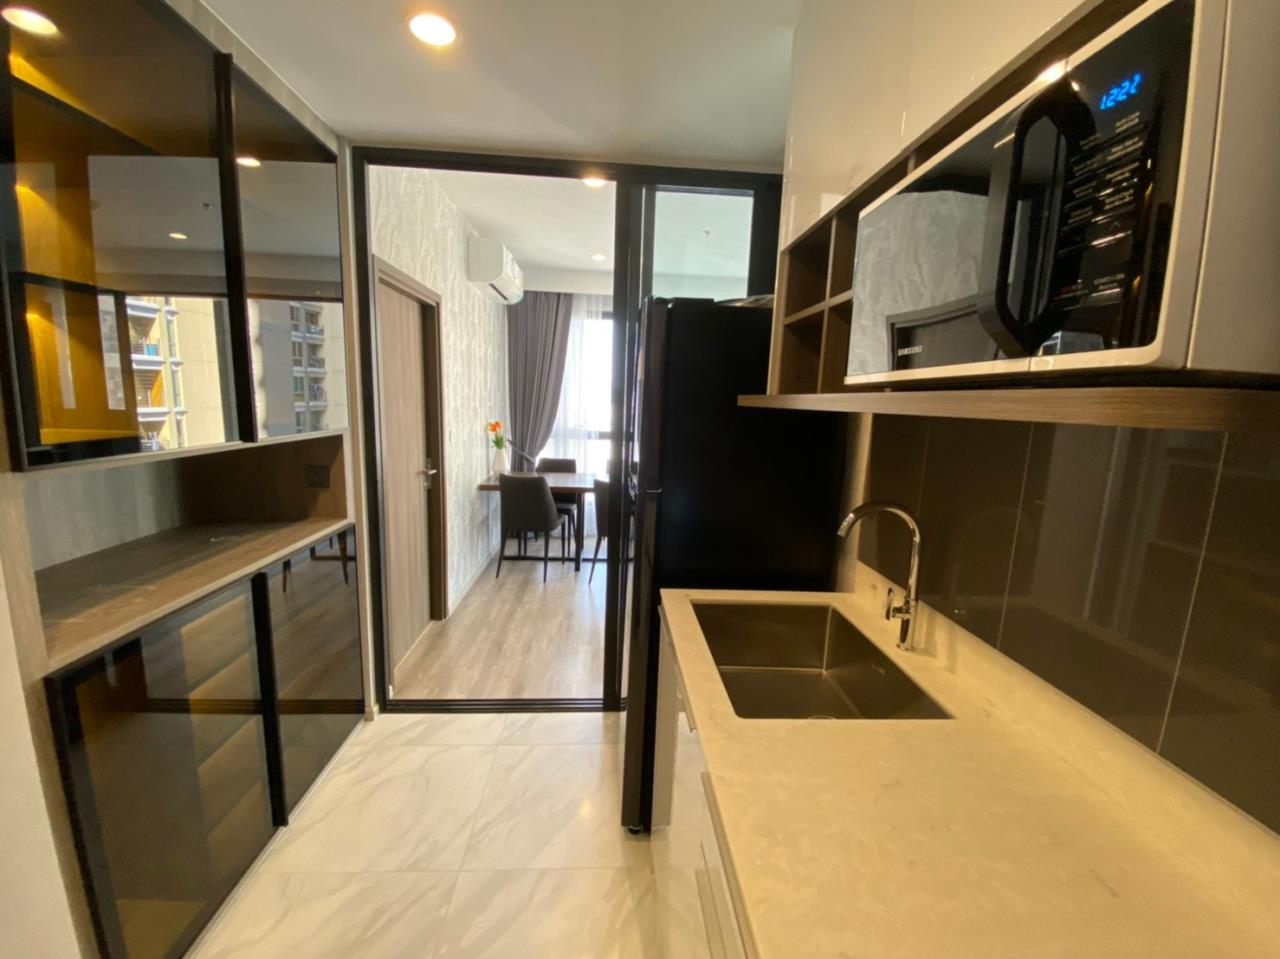 Su Agent Co.,Ltd Agency's BS074 Ideo Mobi Asoke 55 sq.m 2 Bedroom for rent 41,000 Baht/Month 2